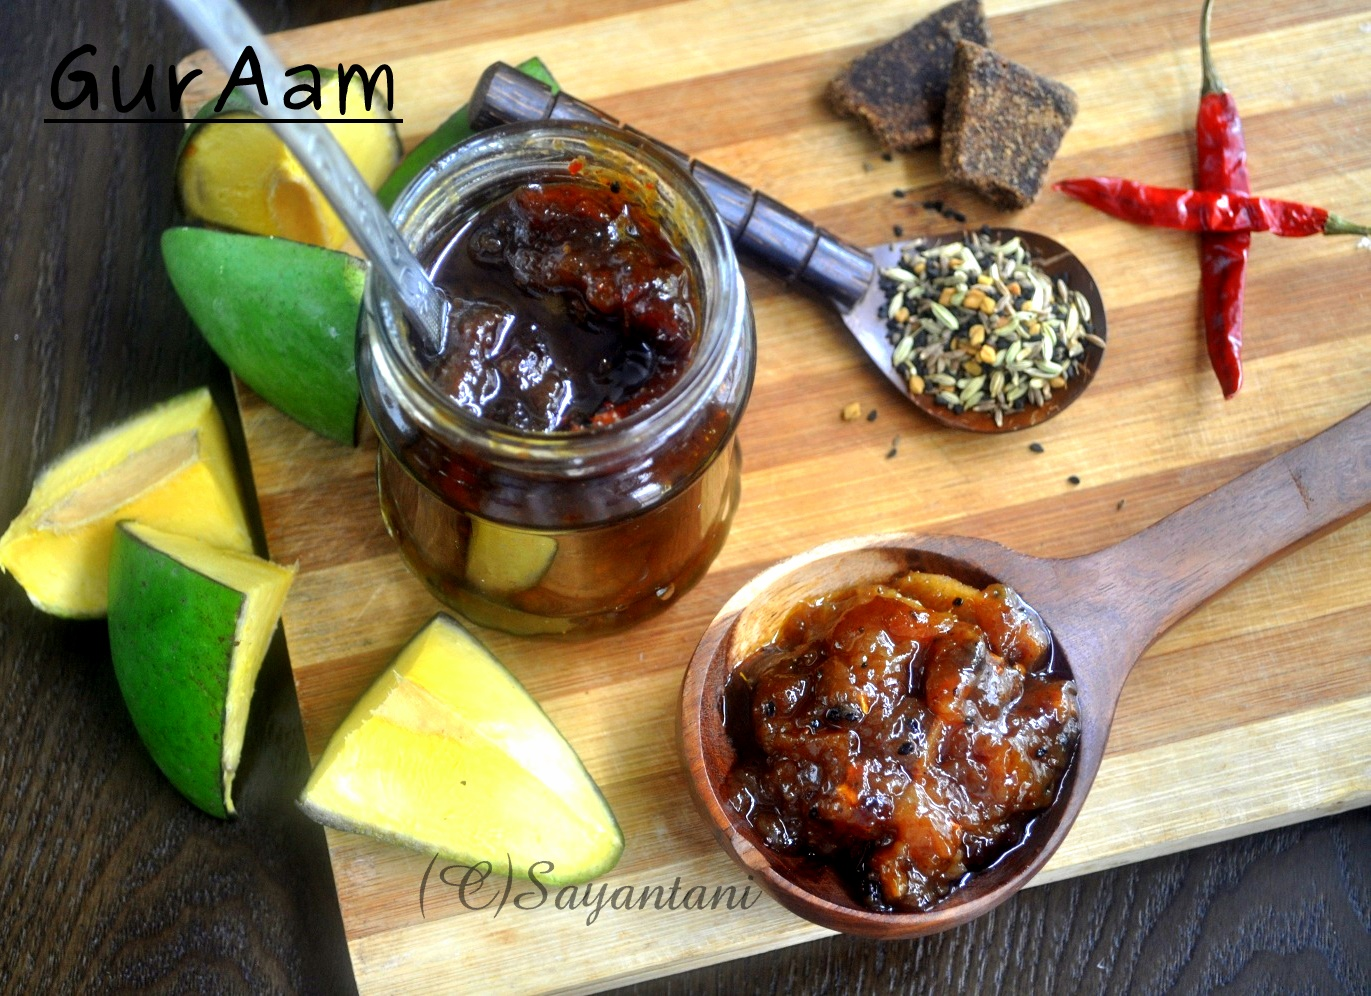 Gur Aam Sweet Sour N Spicy Mango Pickle With Jaggery A